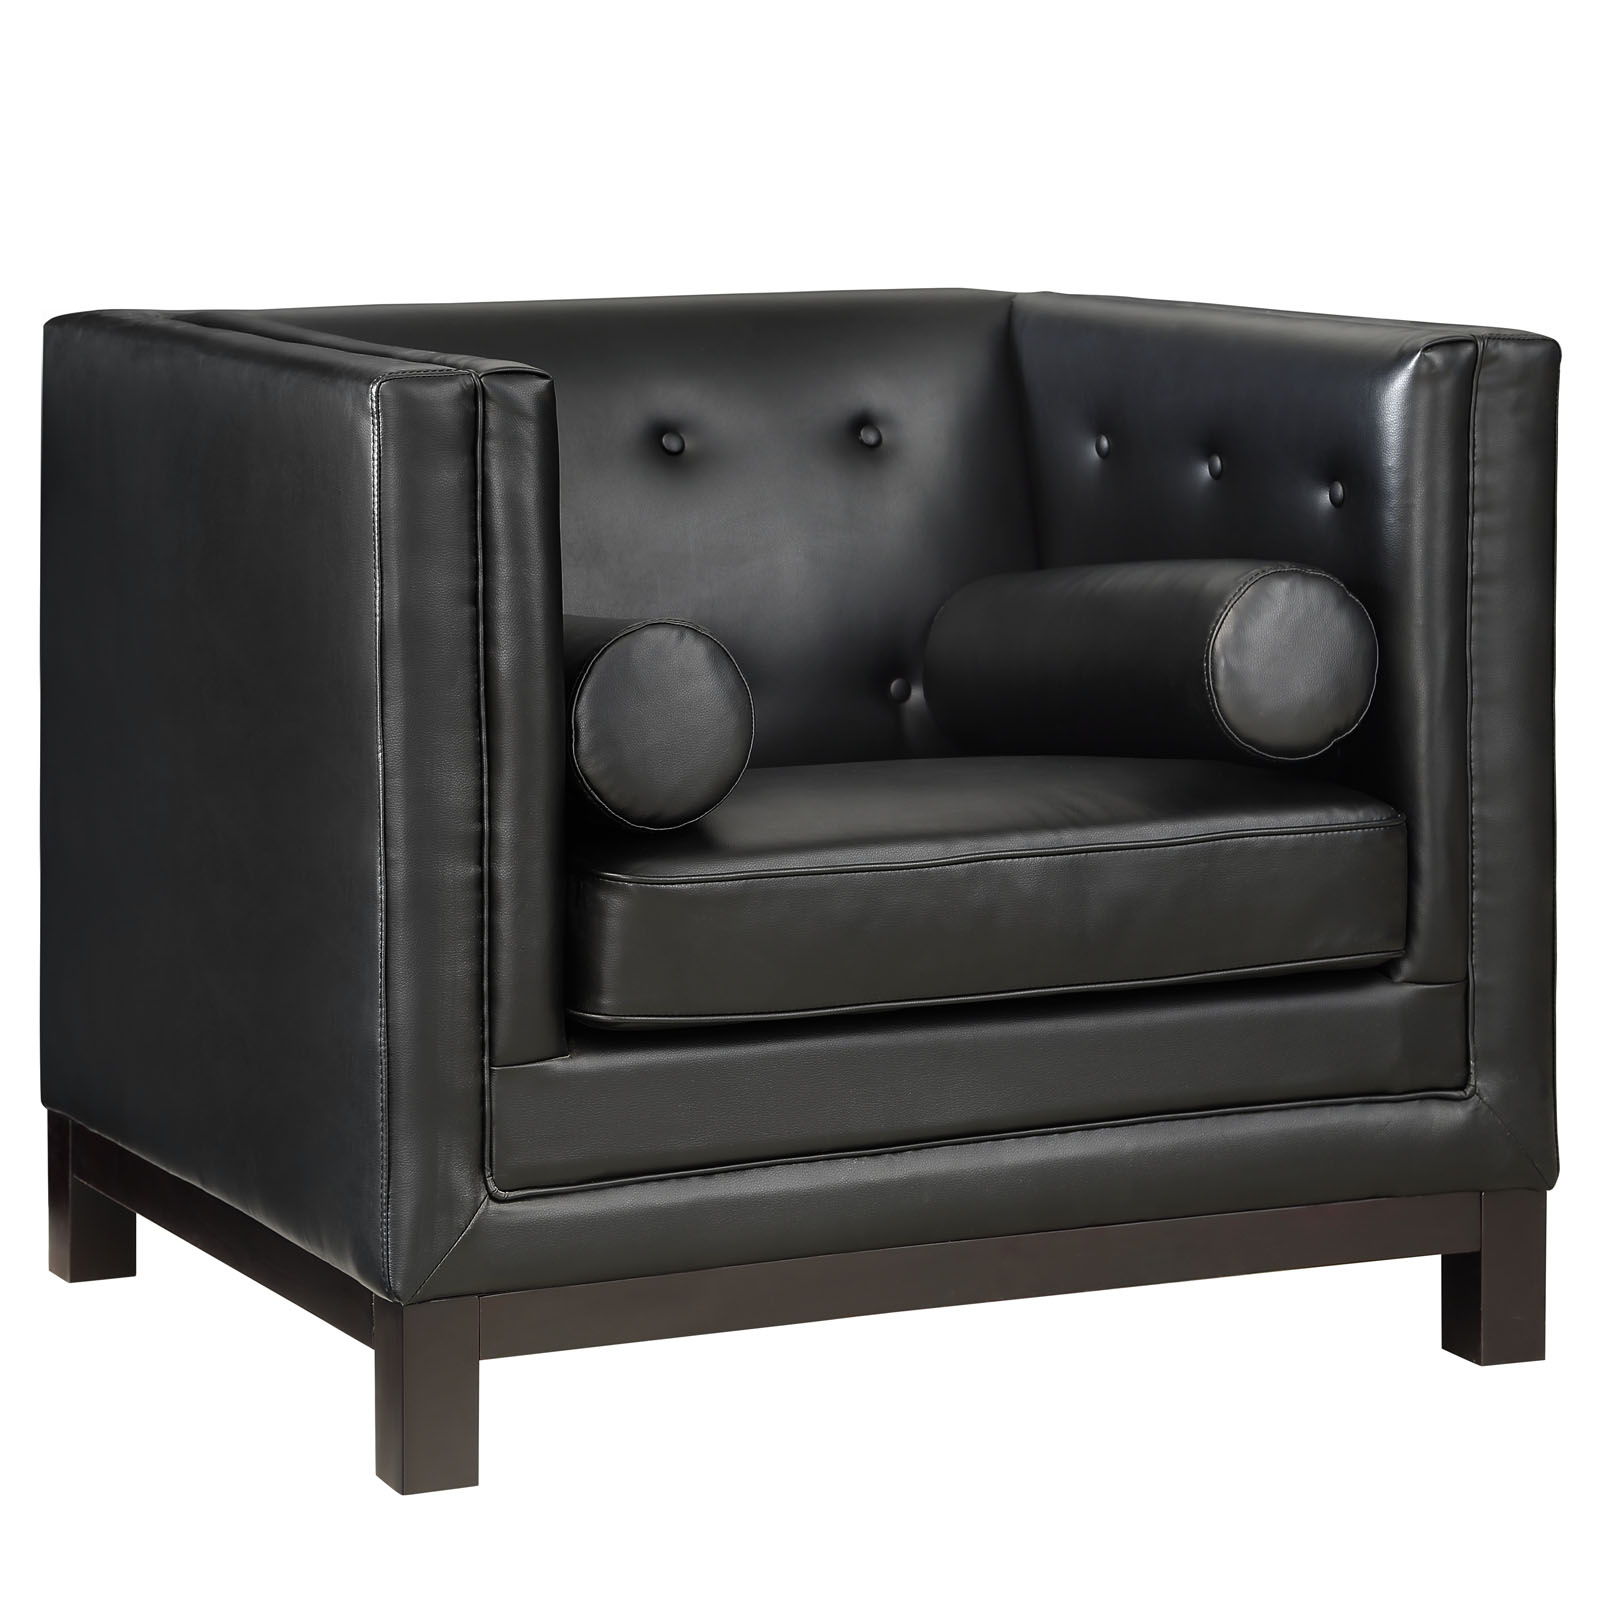 Empire Sofa Armchair Black 5